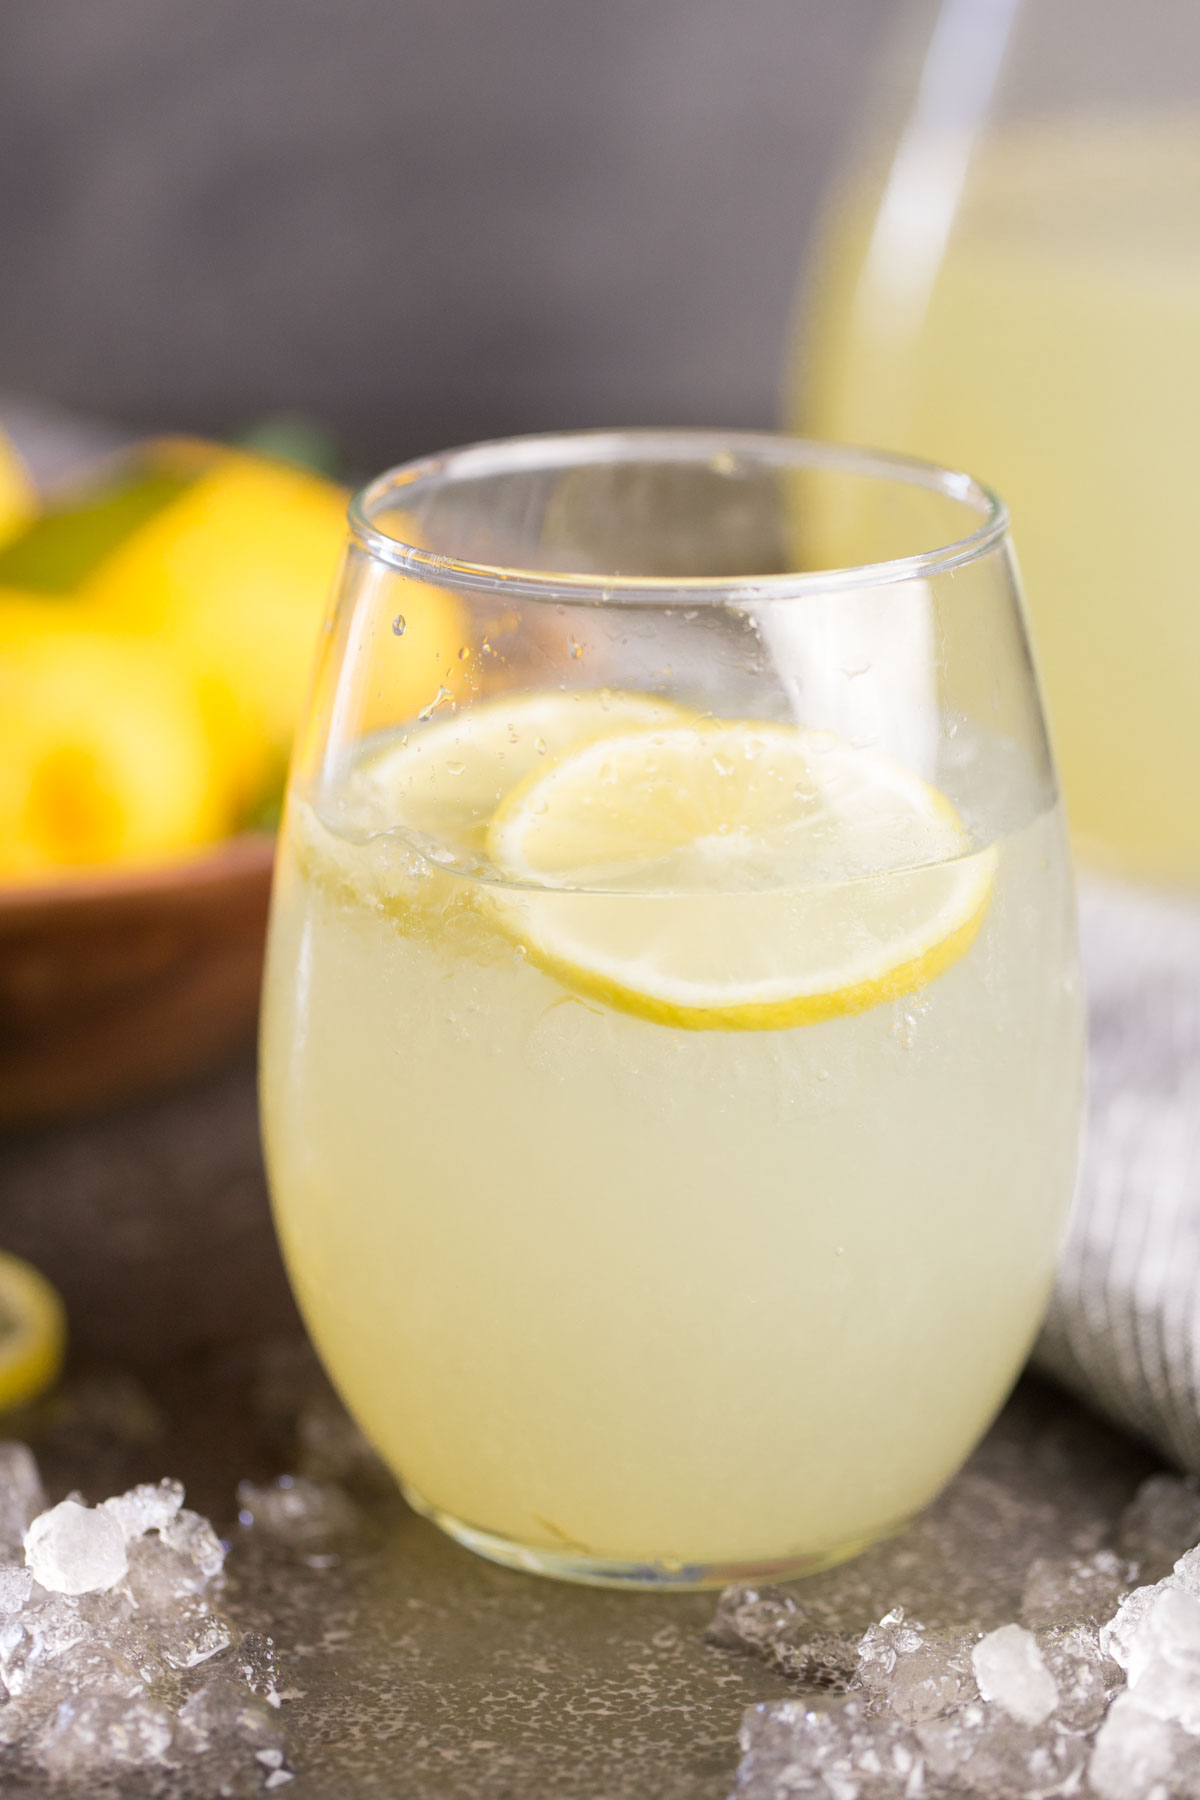 Close up front view of glass of lemonade with lemon slices and crushed ice.